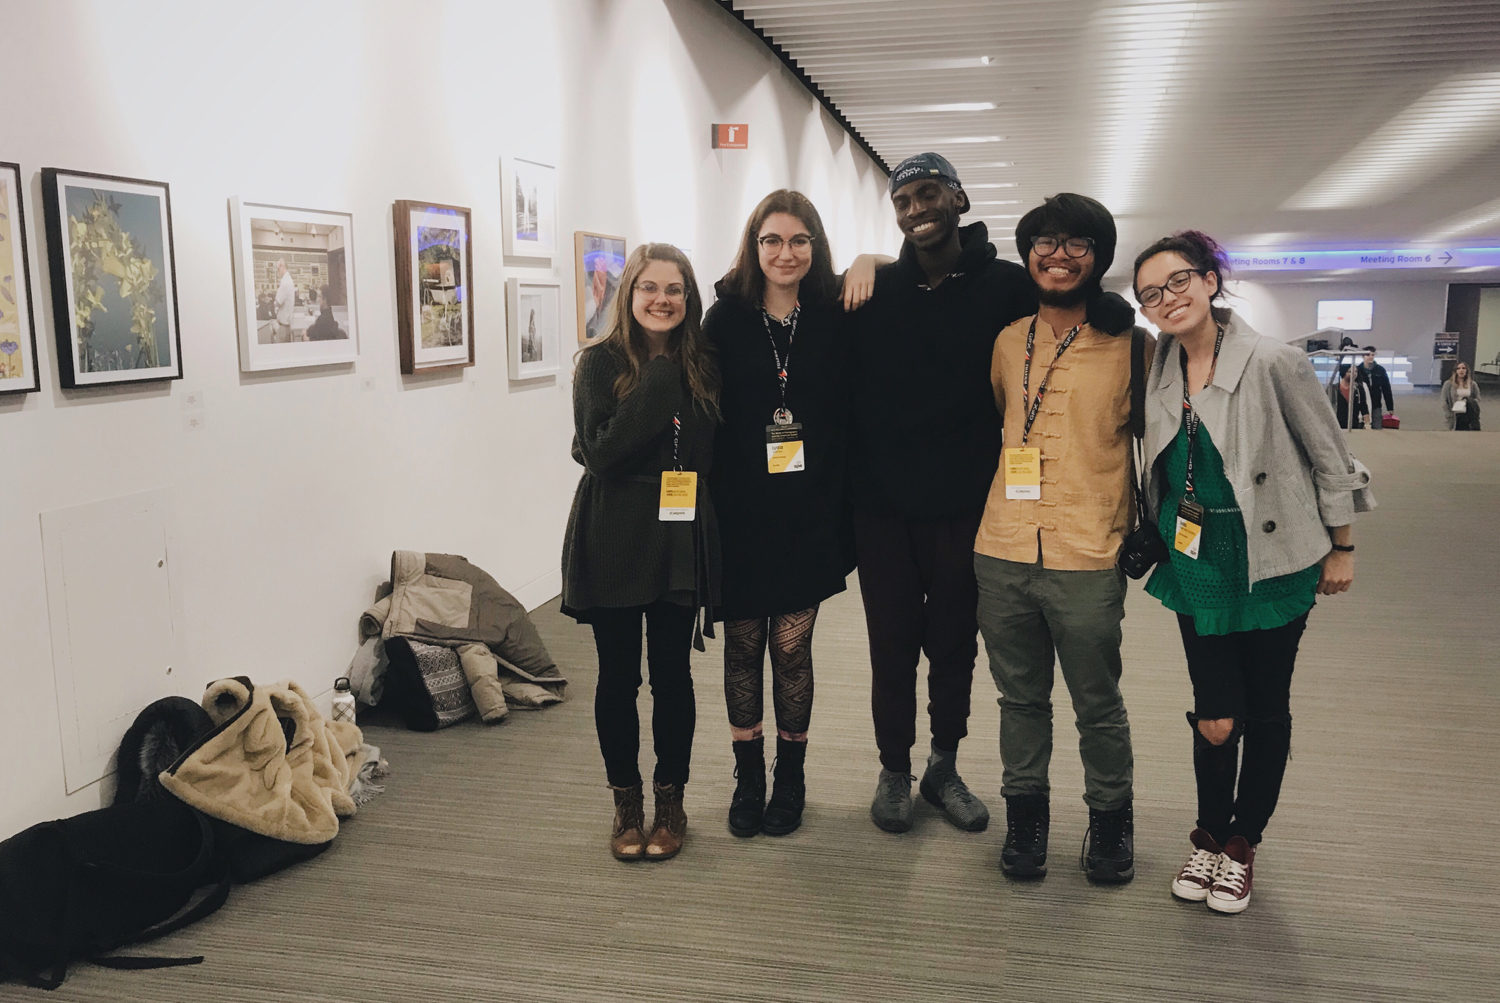 Photo of my students and me (left) at the SPE National 2019 Conference in Cleveland, OH - © Ally Christmas